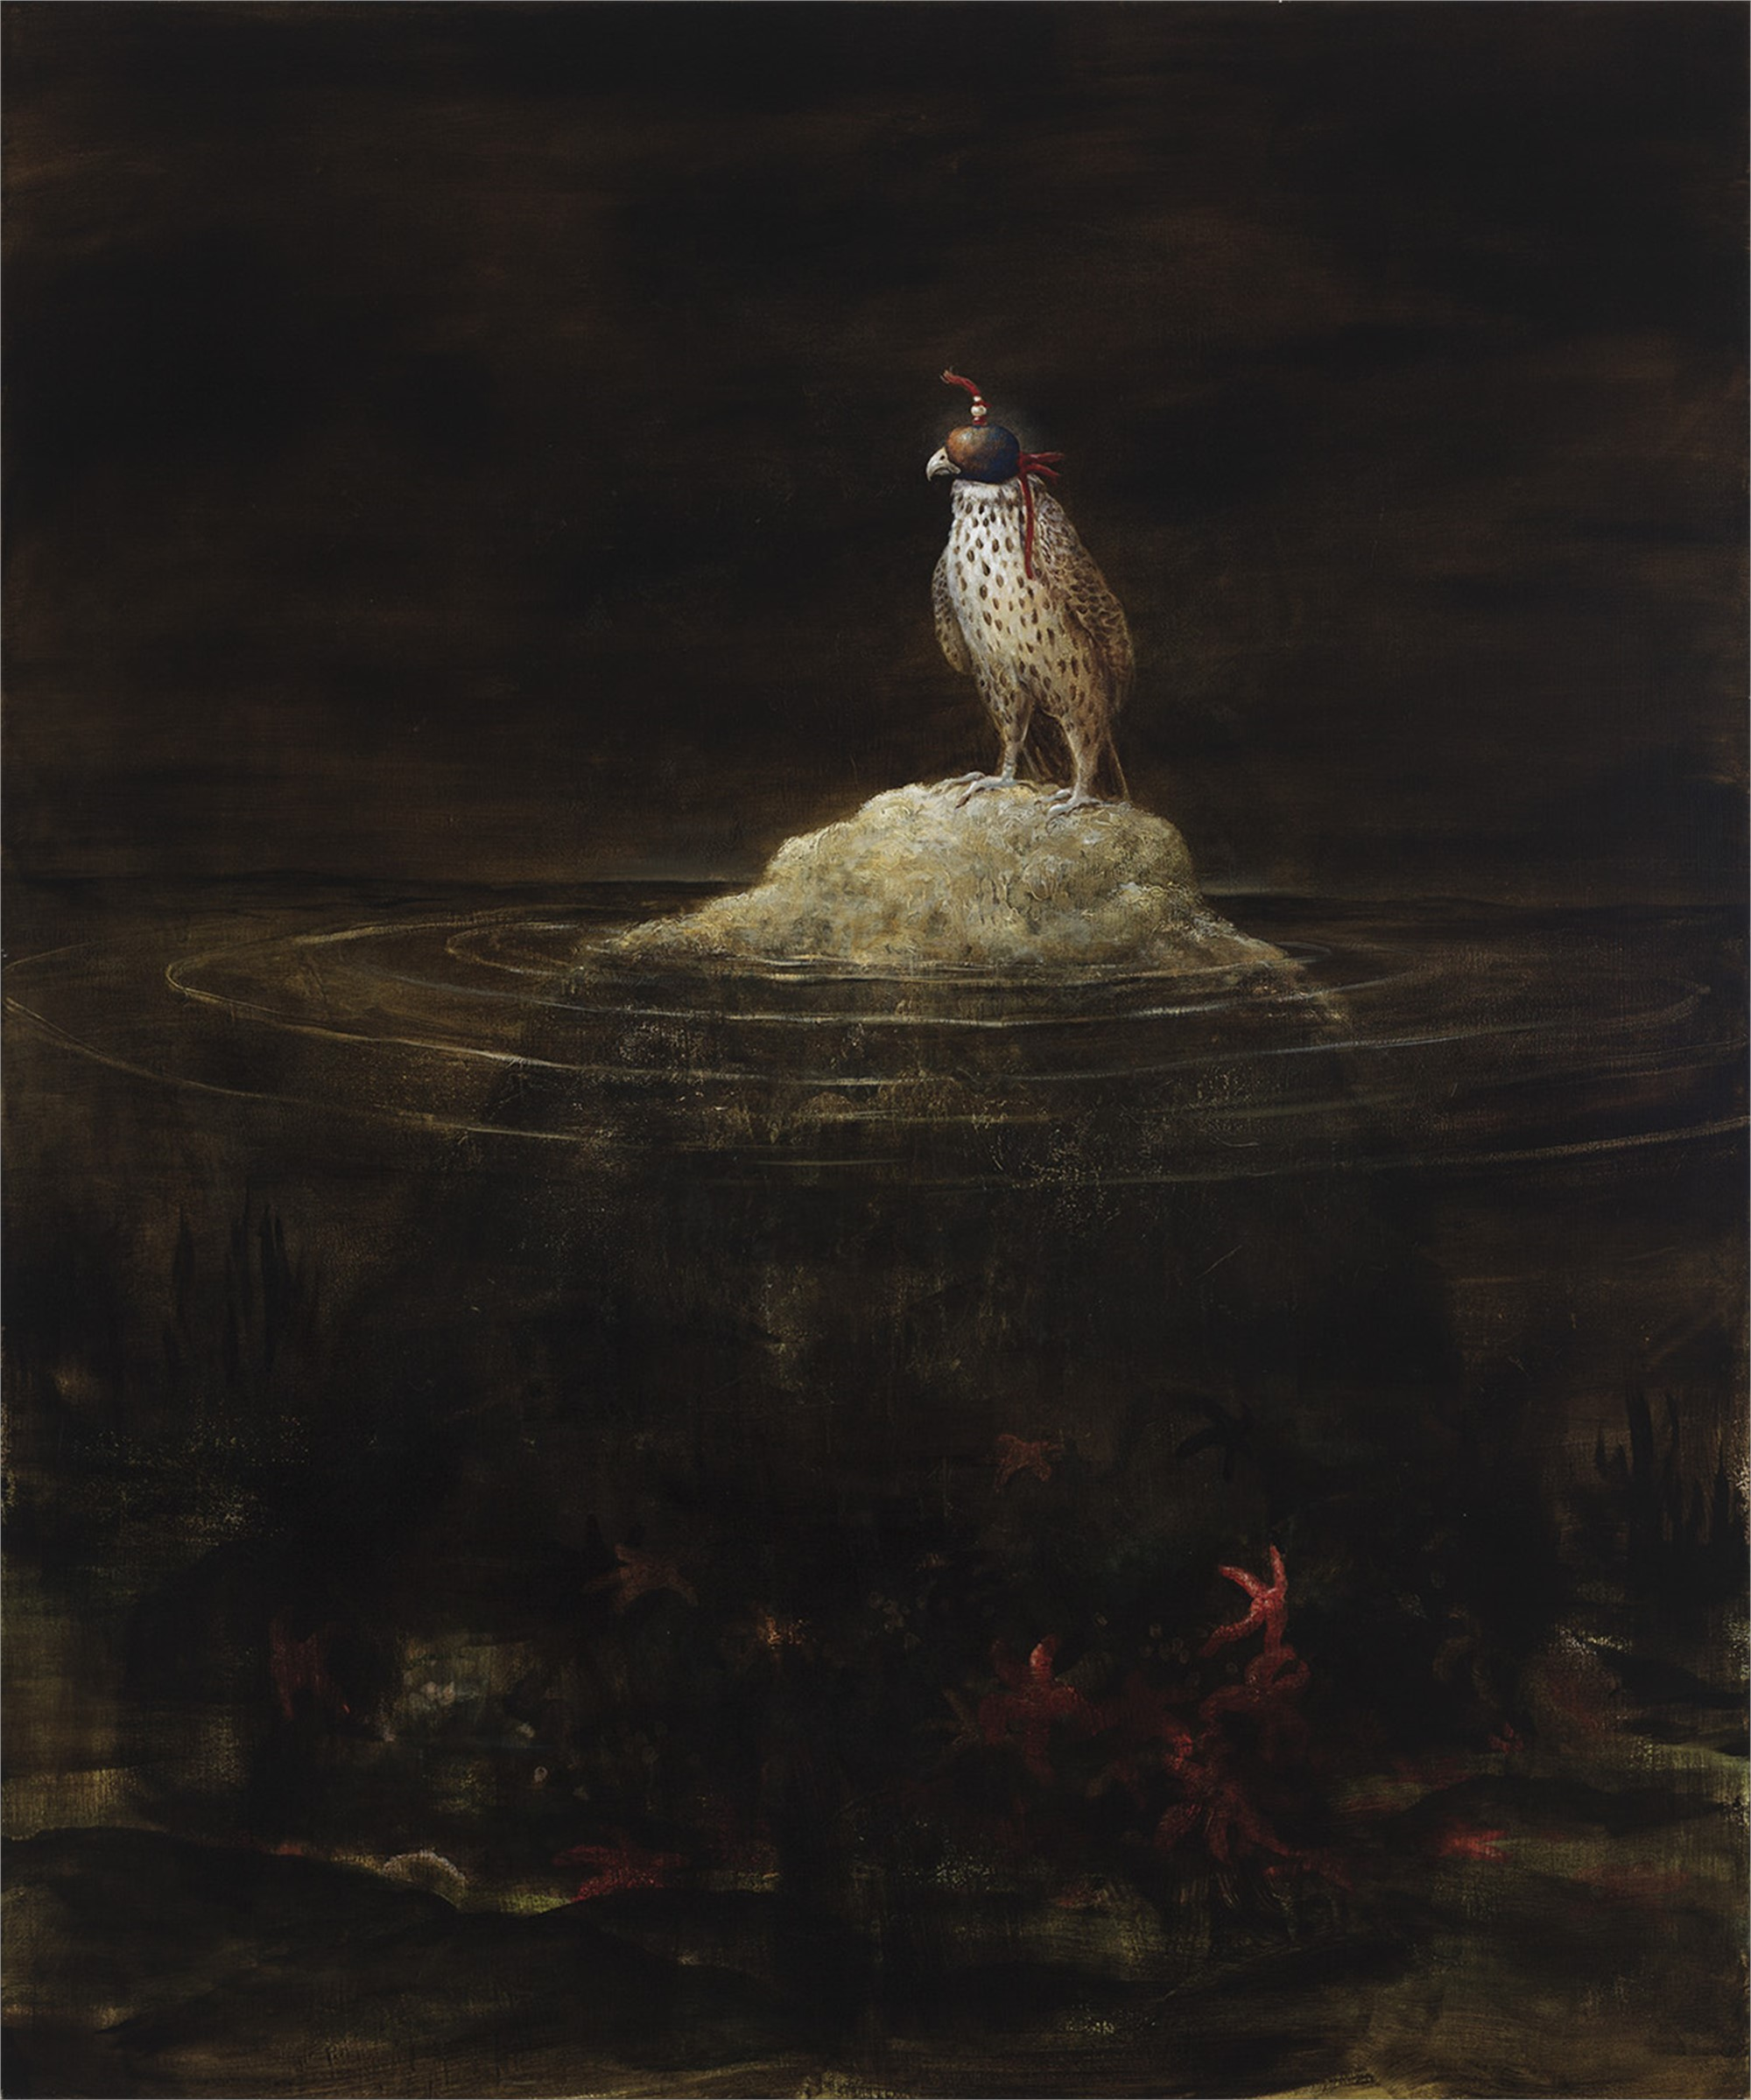 As Above, So Below by Kevin Sloan